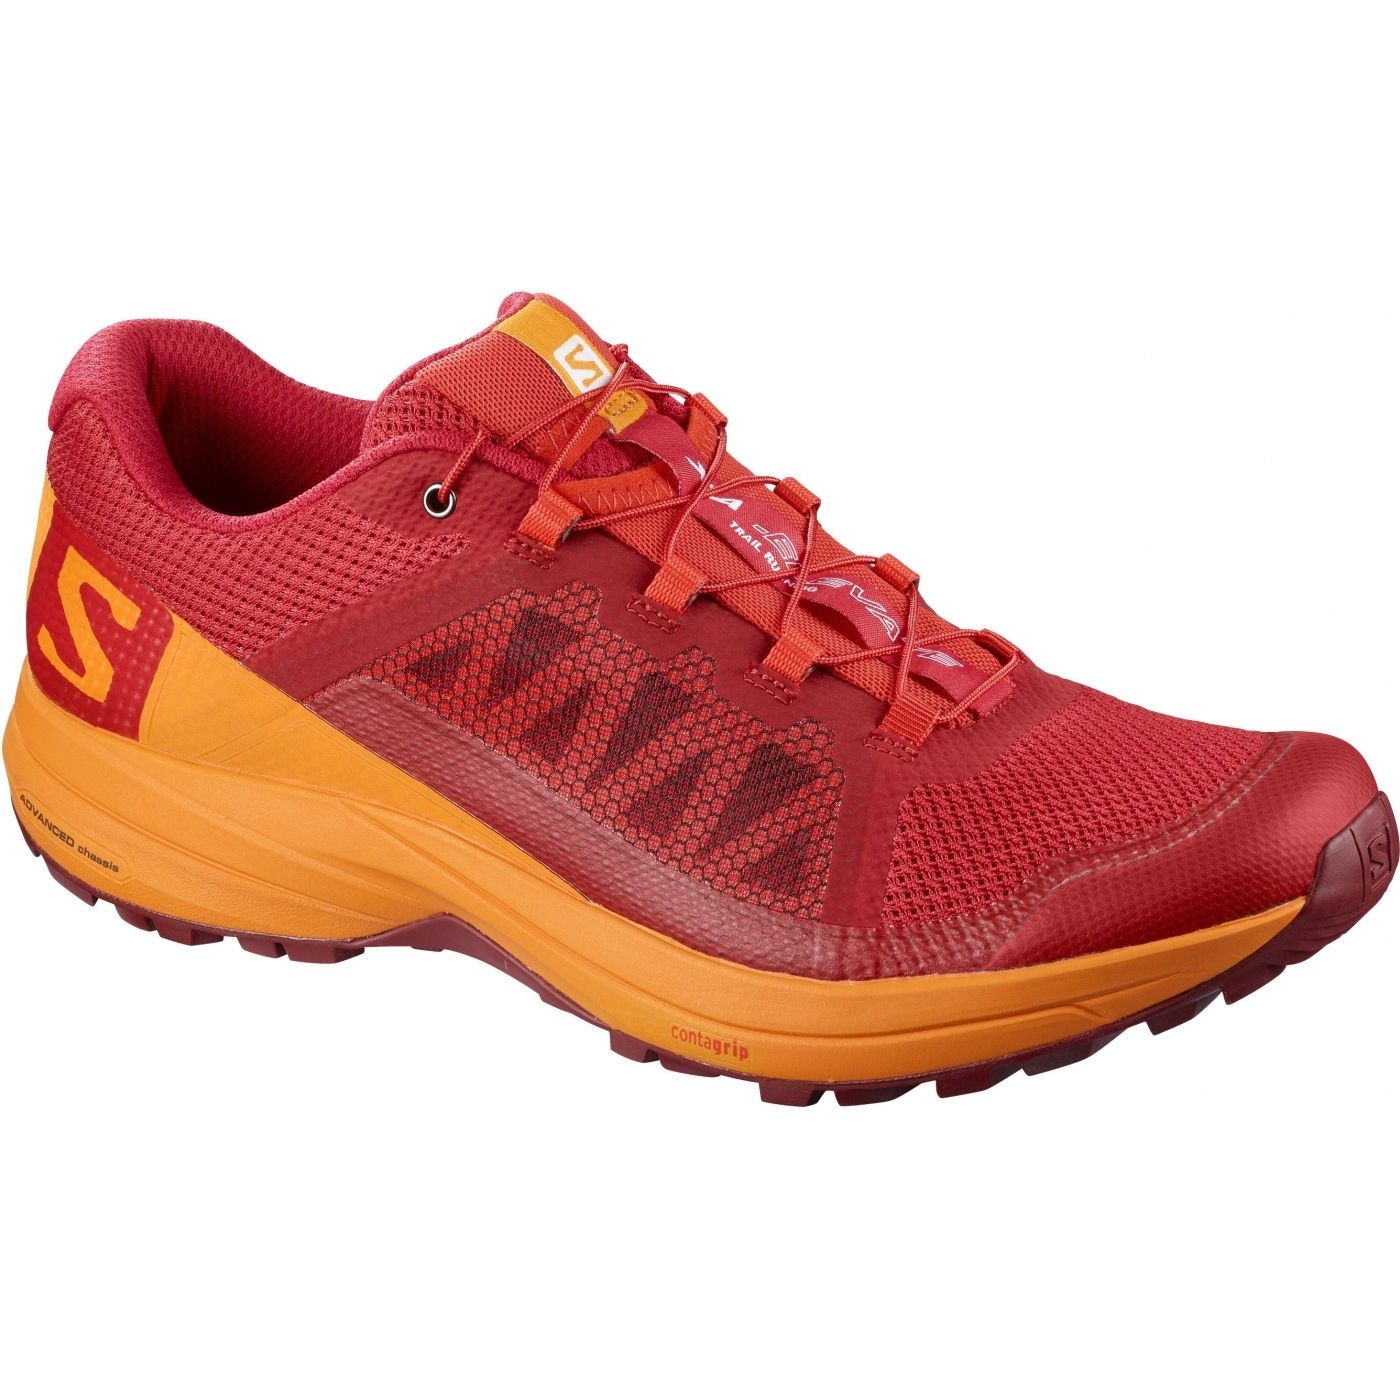 Cherry Barbados Elevate Xa Chaussures Salomon g0nwq4vwI